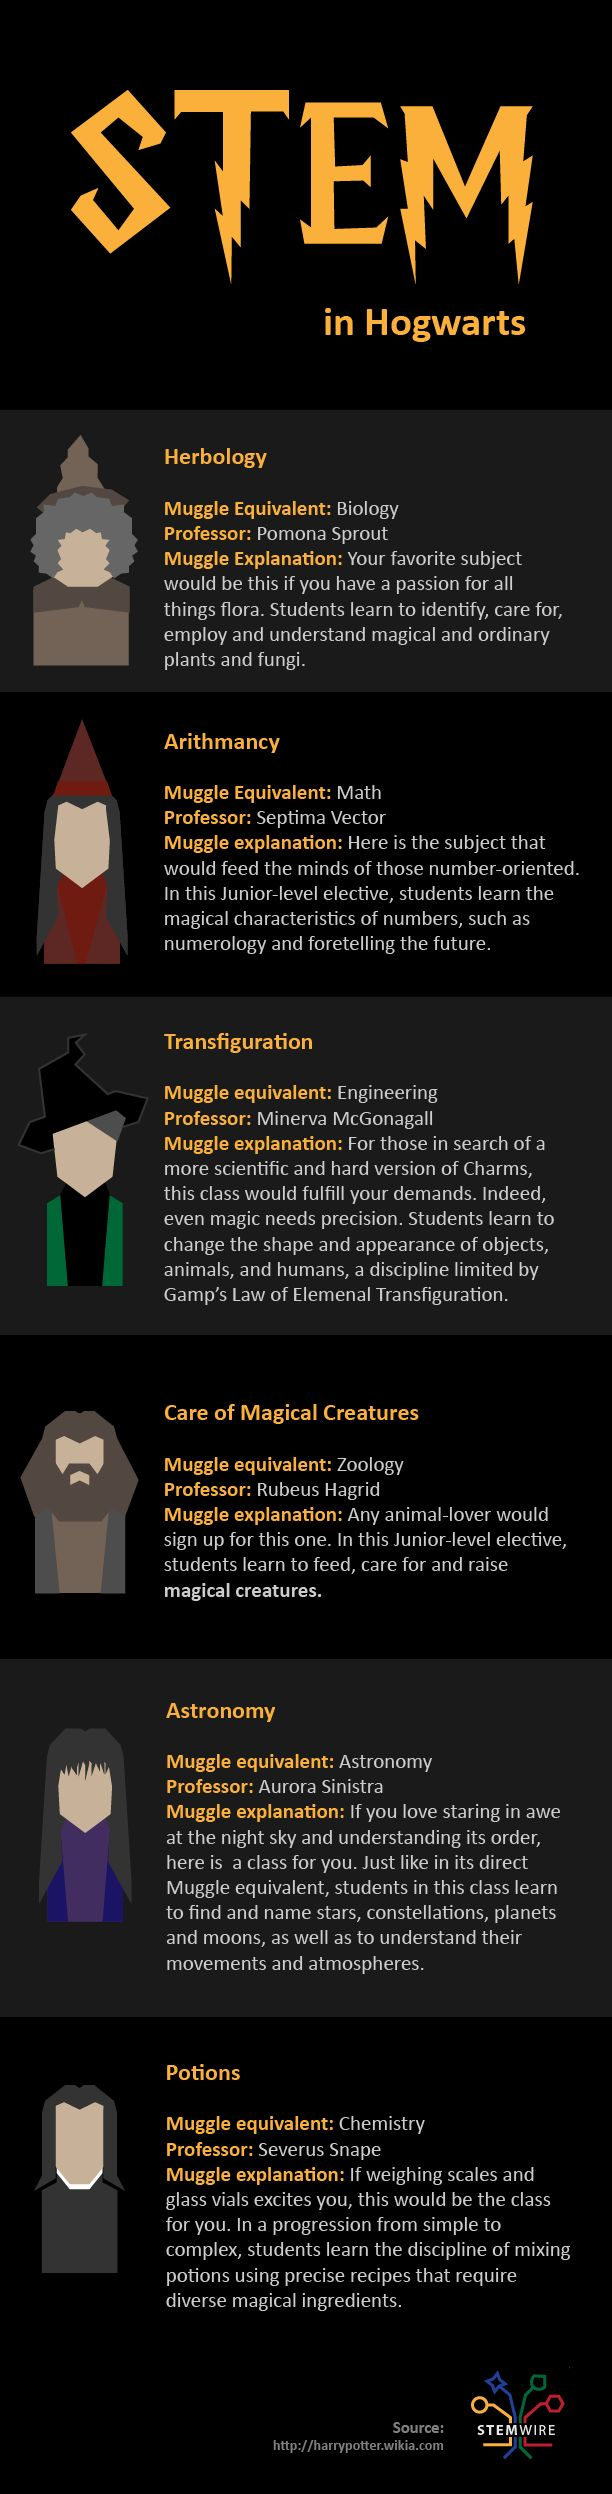 Harry Potter-  An infographic that links Hogwarts classes to their potential real life equivalents.